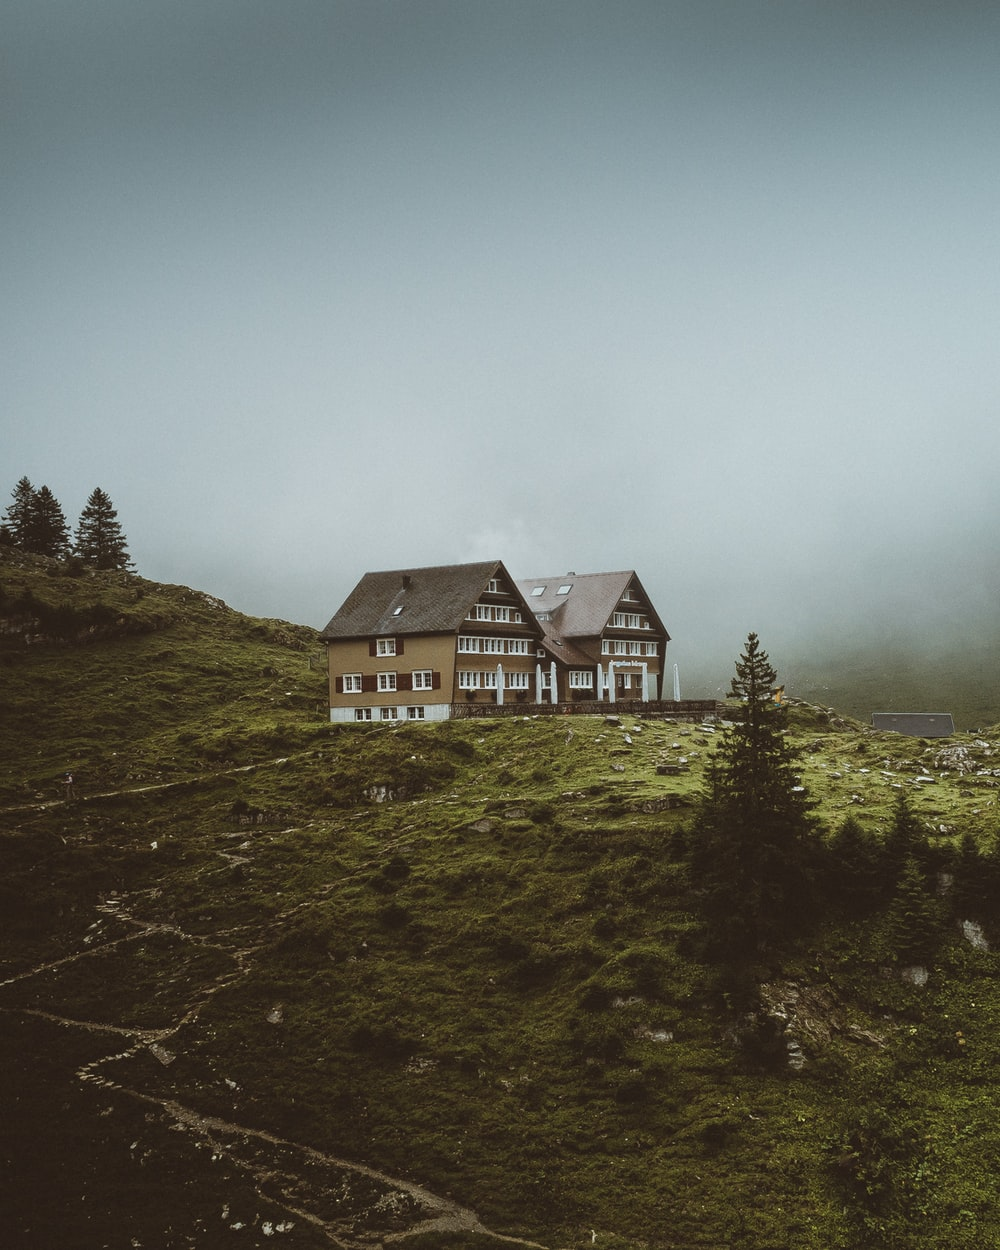 white and black house on green grass field under gray sky